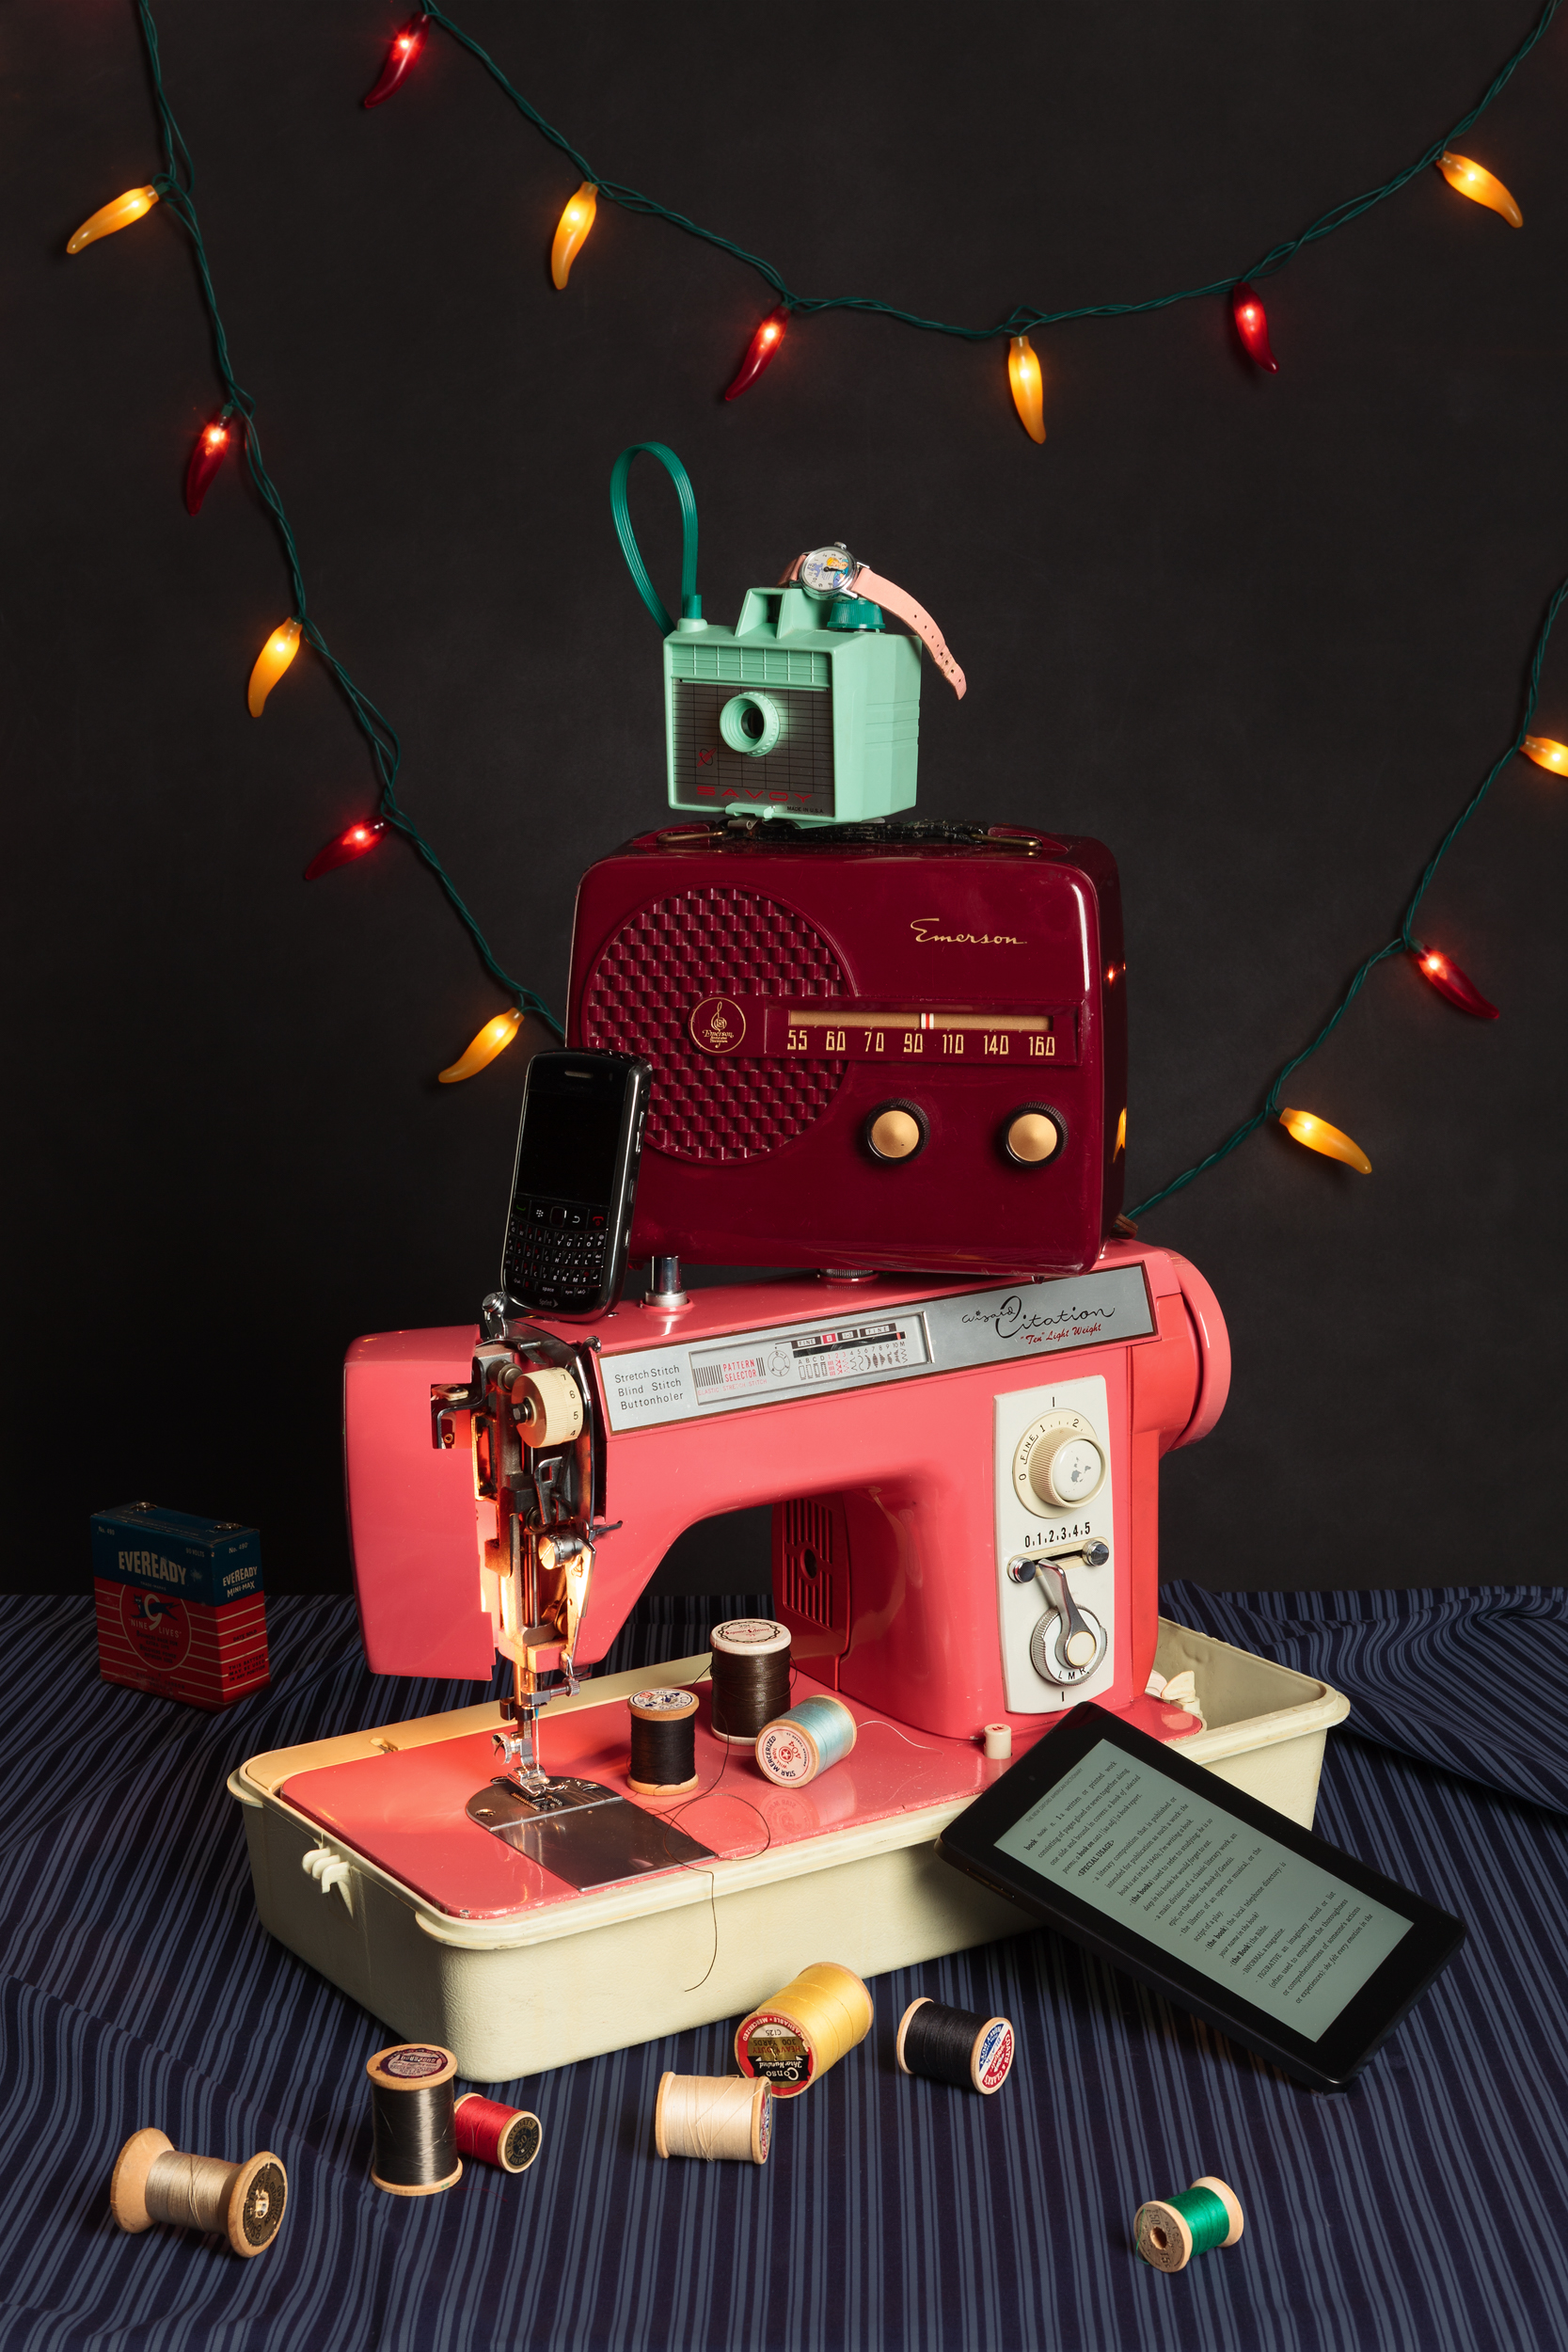 Tech Vanitas: Pink Sewing Machine